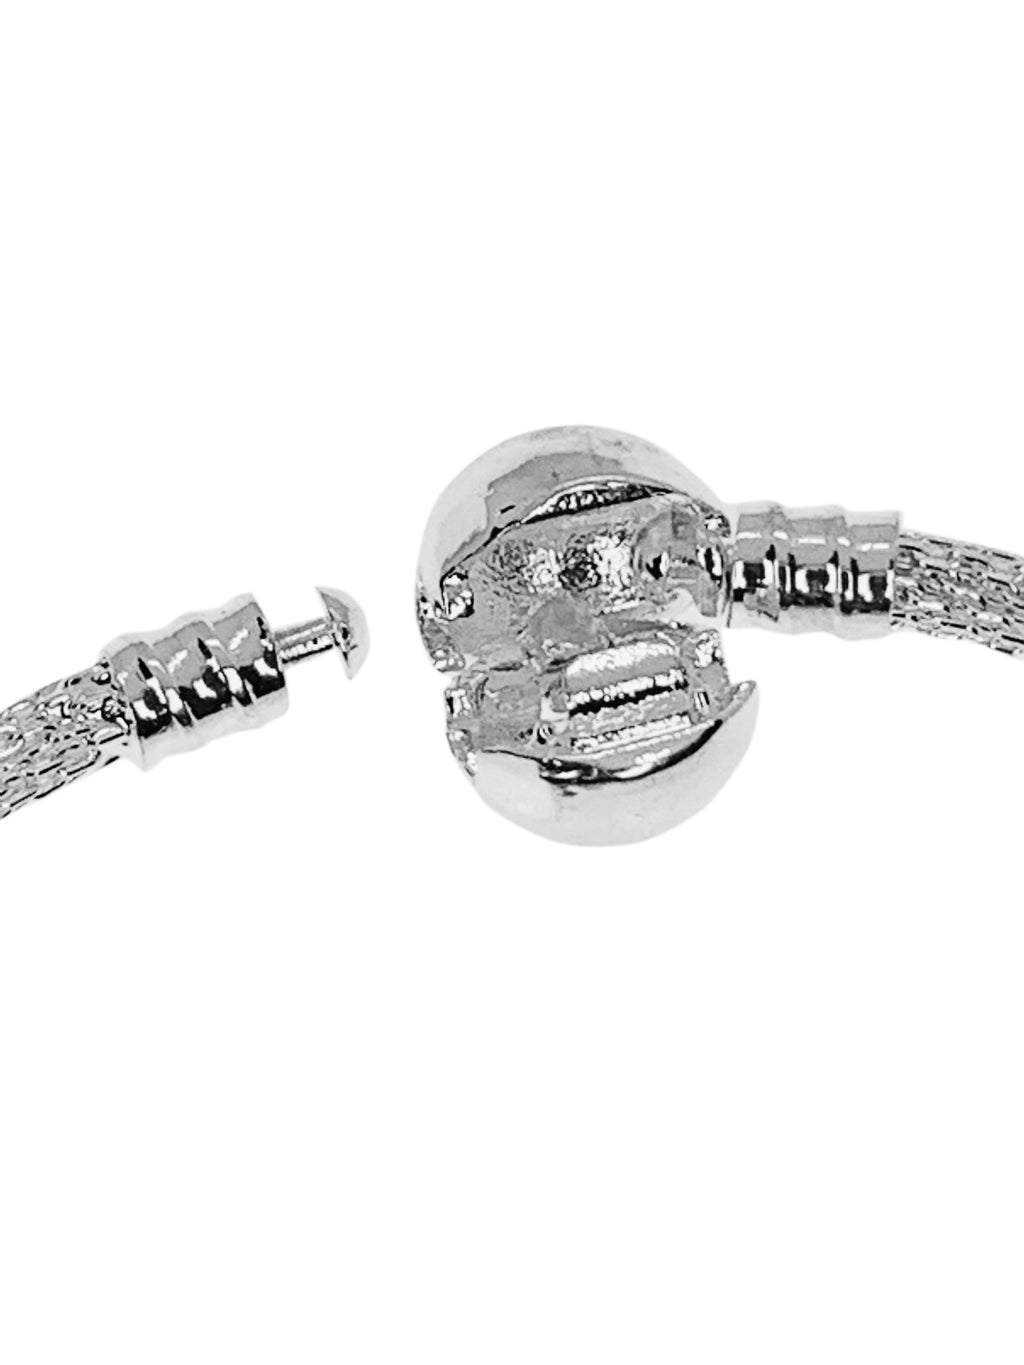 Bling Bangle Clasp is easy to open. Just slide your nail in and lever it open. When closing, simply line up the tiny mushroom head until it sits into the little cradle of the Ball Clasp and then snap it closed.